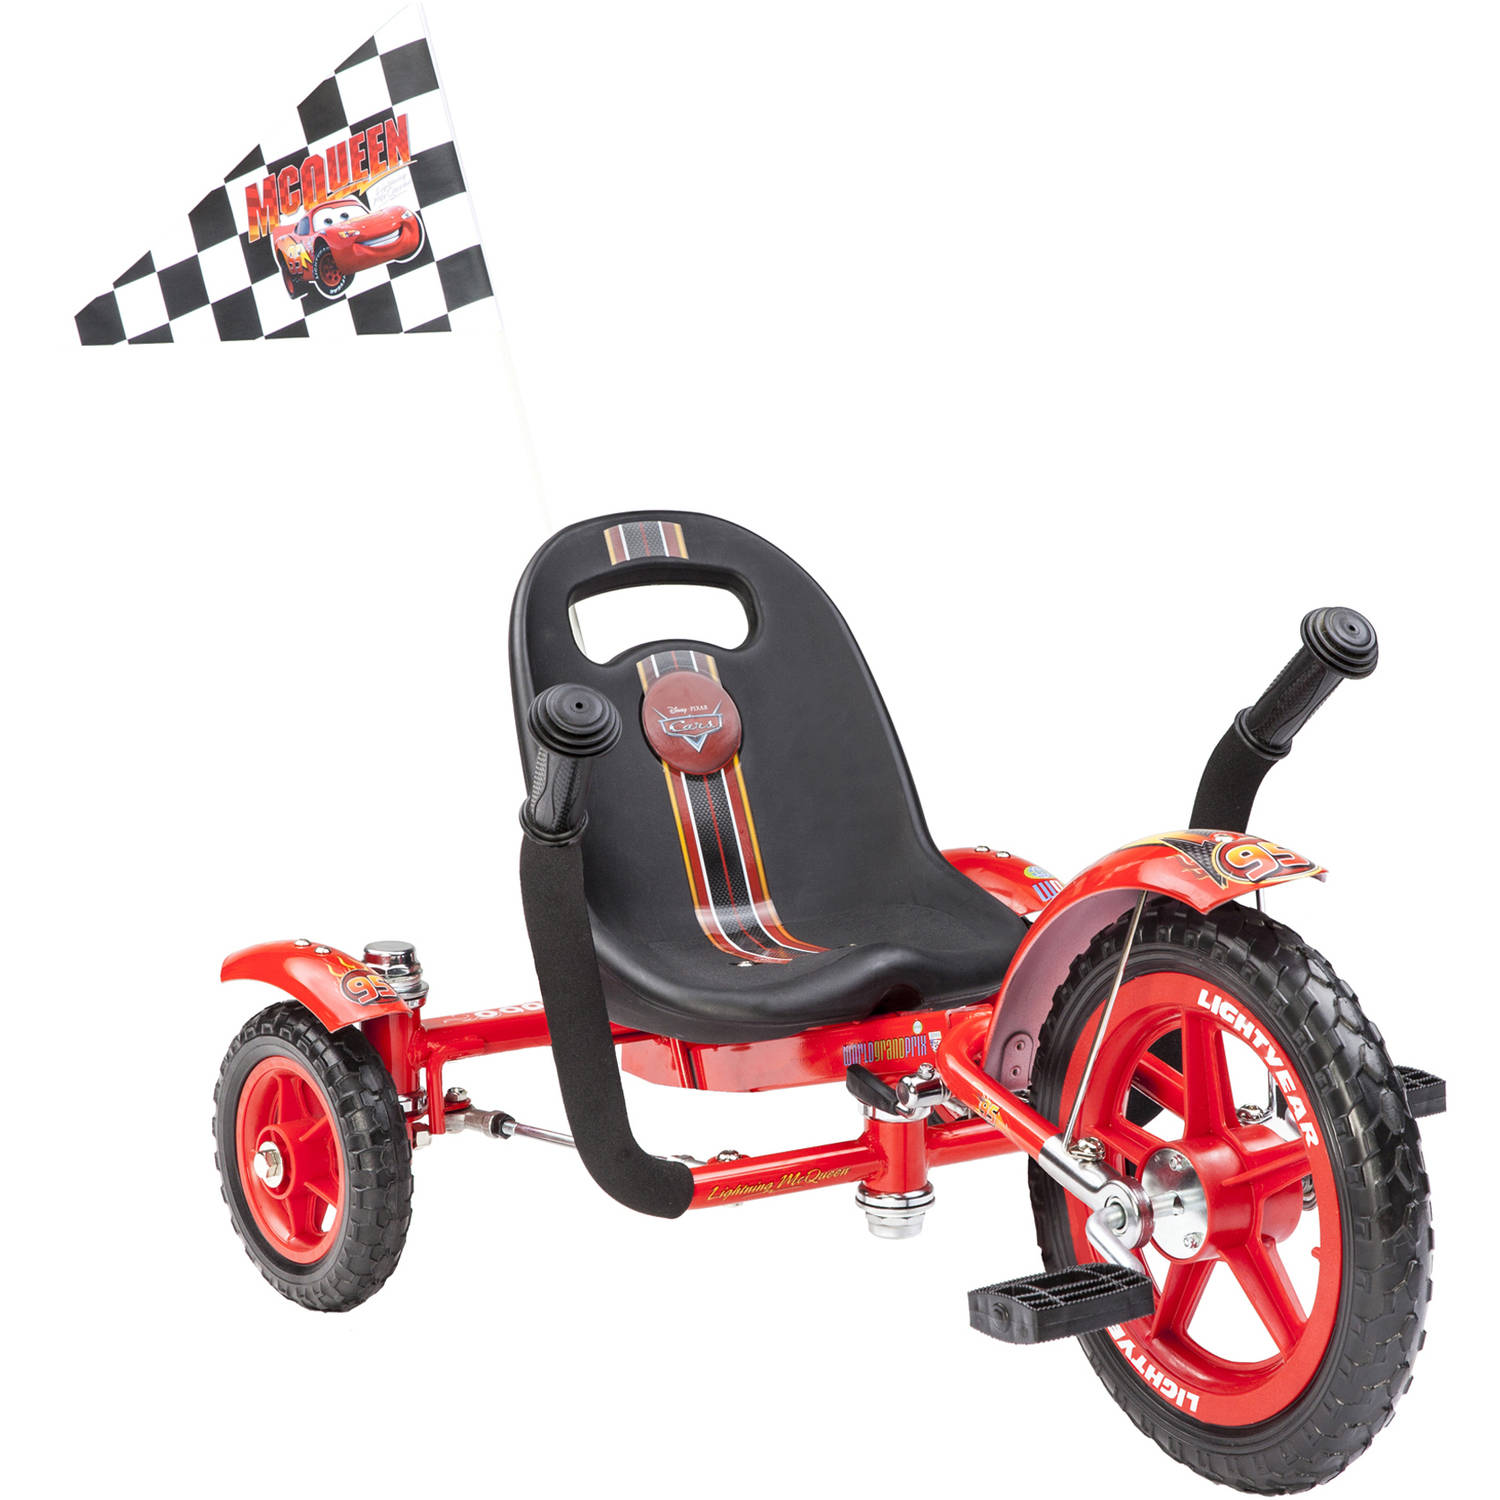 Mobo Tot Disney Cars Lightning McQueen: A Toddler's Ergonomic 3-Wheeled Cruiser